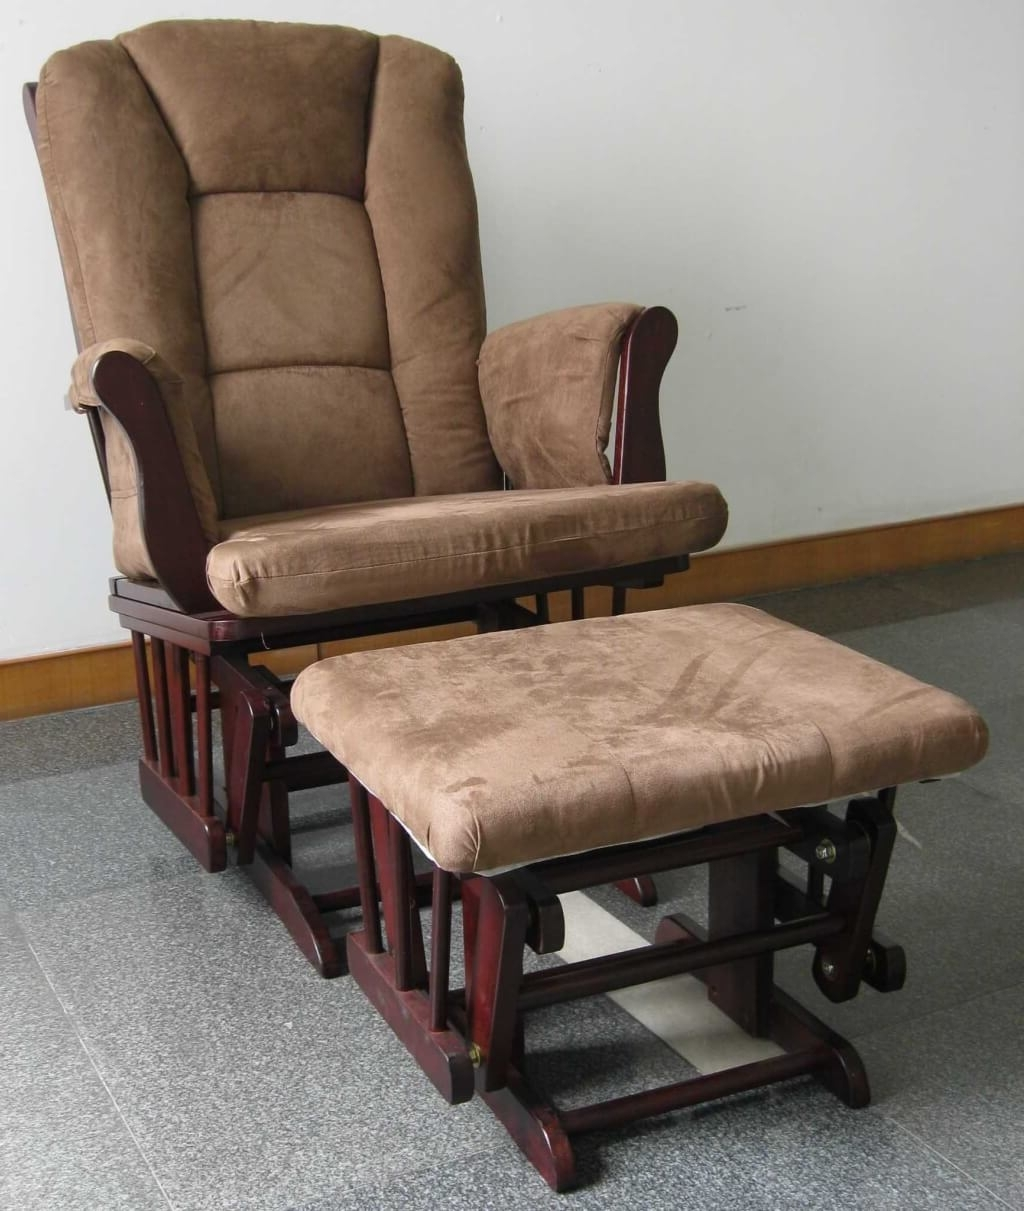 Rocking Chairs With Footrest Pertaining To Trendy Beautiful Wooden Rocking Chairs Prices 11 Furniture Upholstered (View 14 of 20)